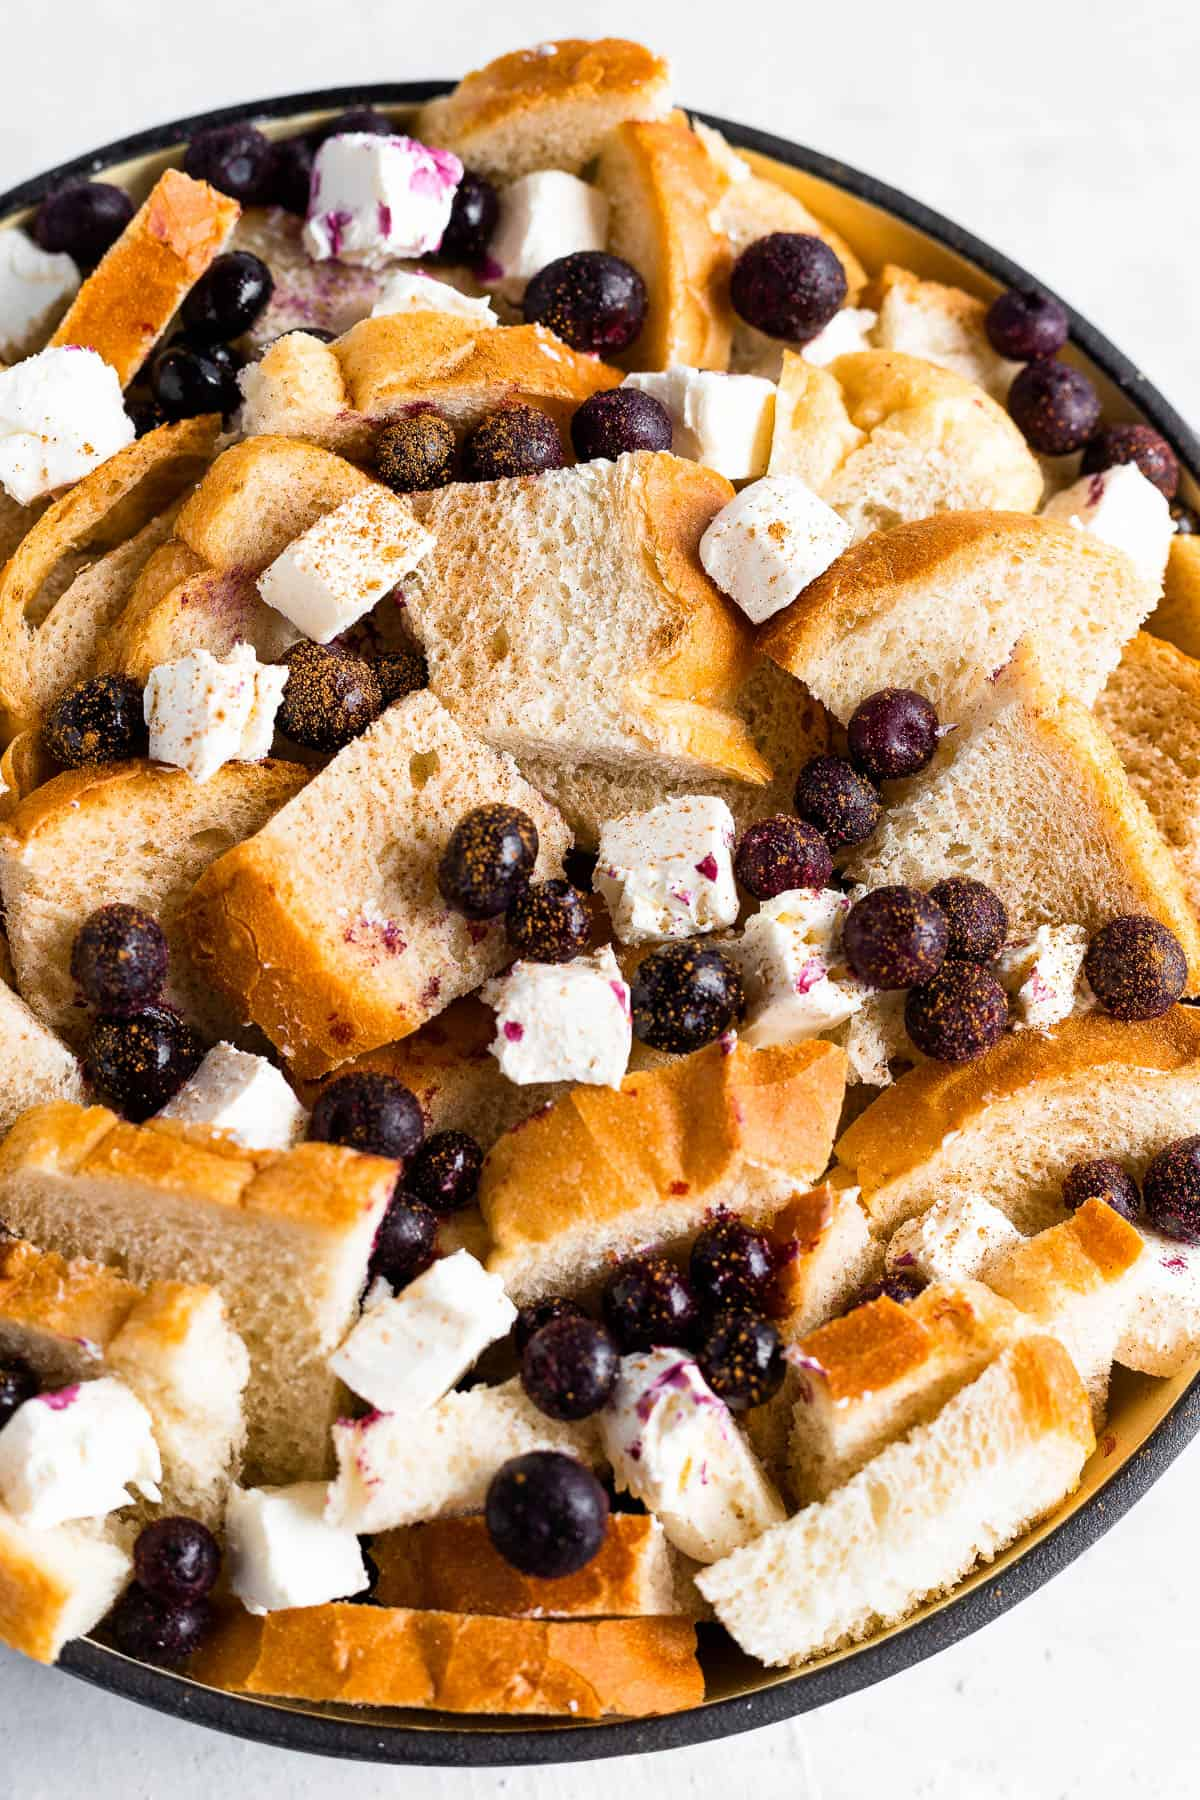 Cubed Sourdough Bread, Blueberries and Cream Cheese Cubes in a Black Bowl